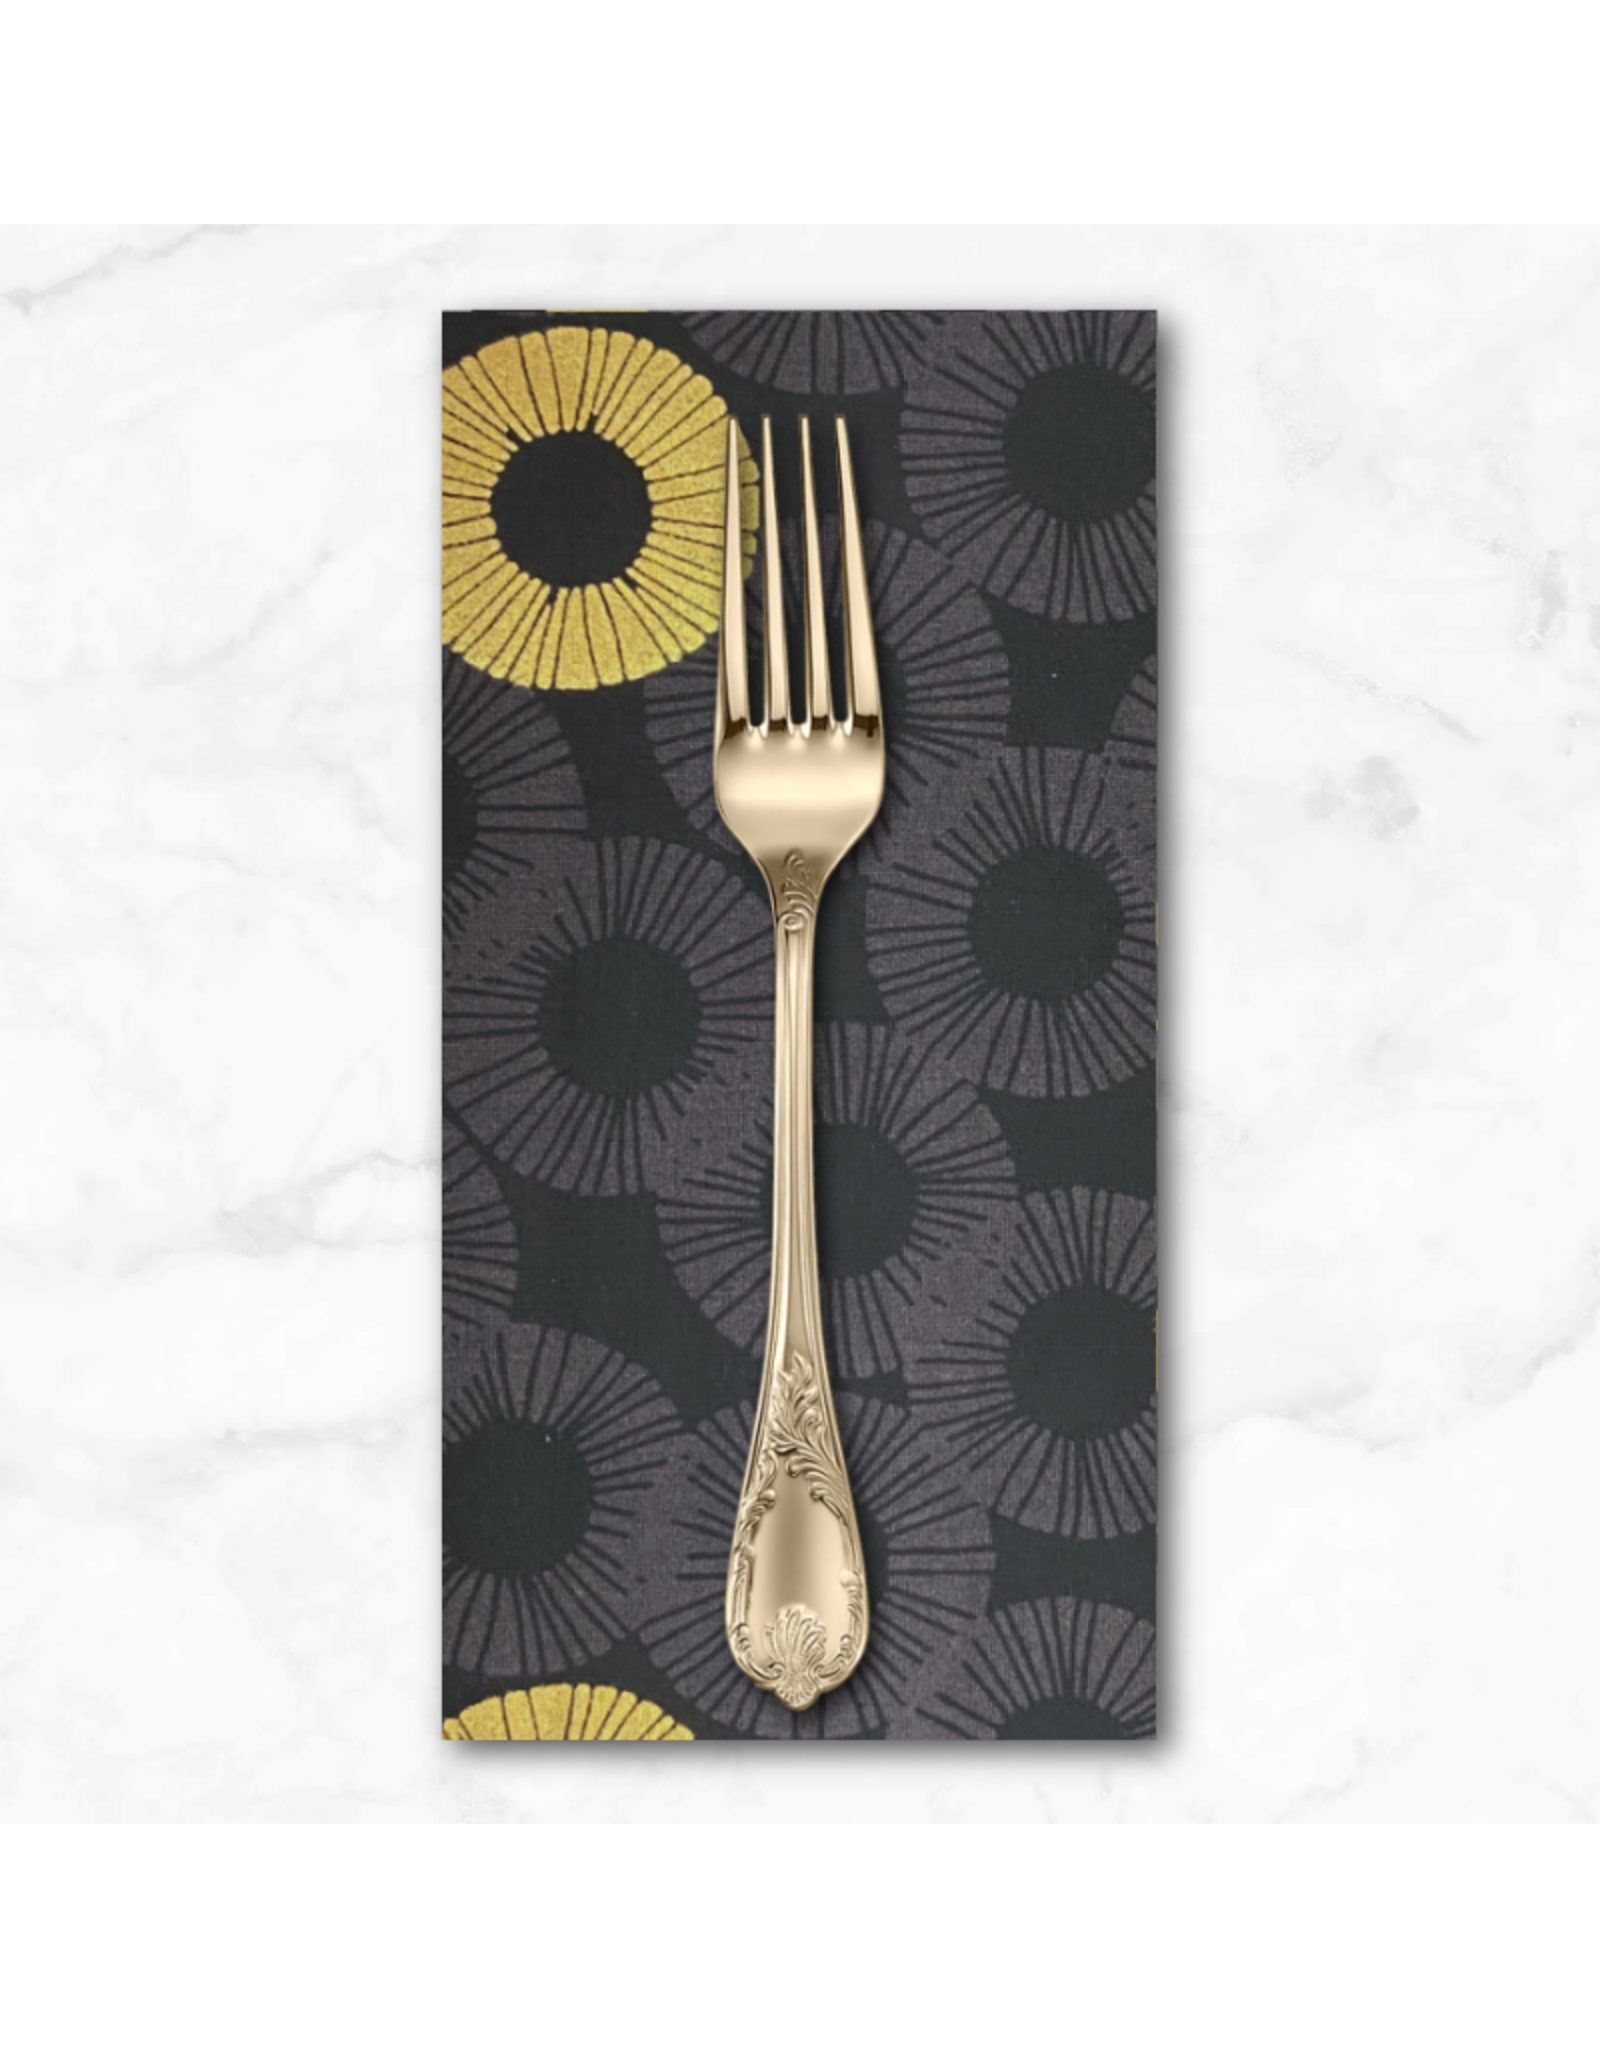 PD's RJR Collection Shiny Objects, Glitz and Glamour Eclipse in Graphite with Gold Metallic, Dinner Napkin